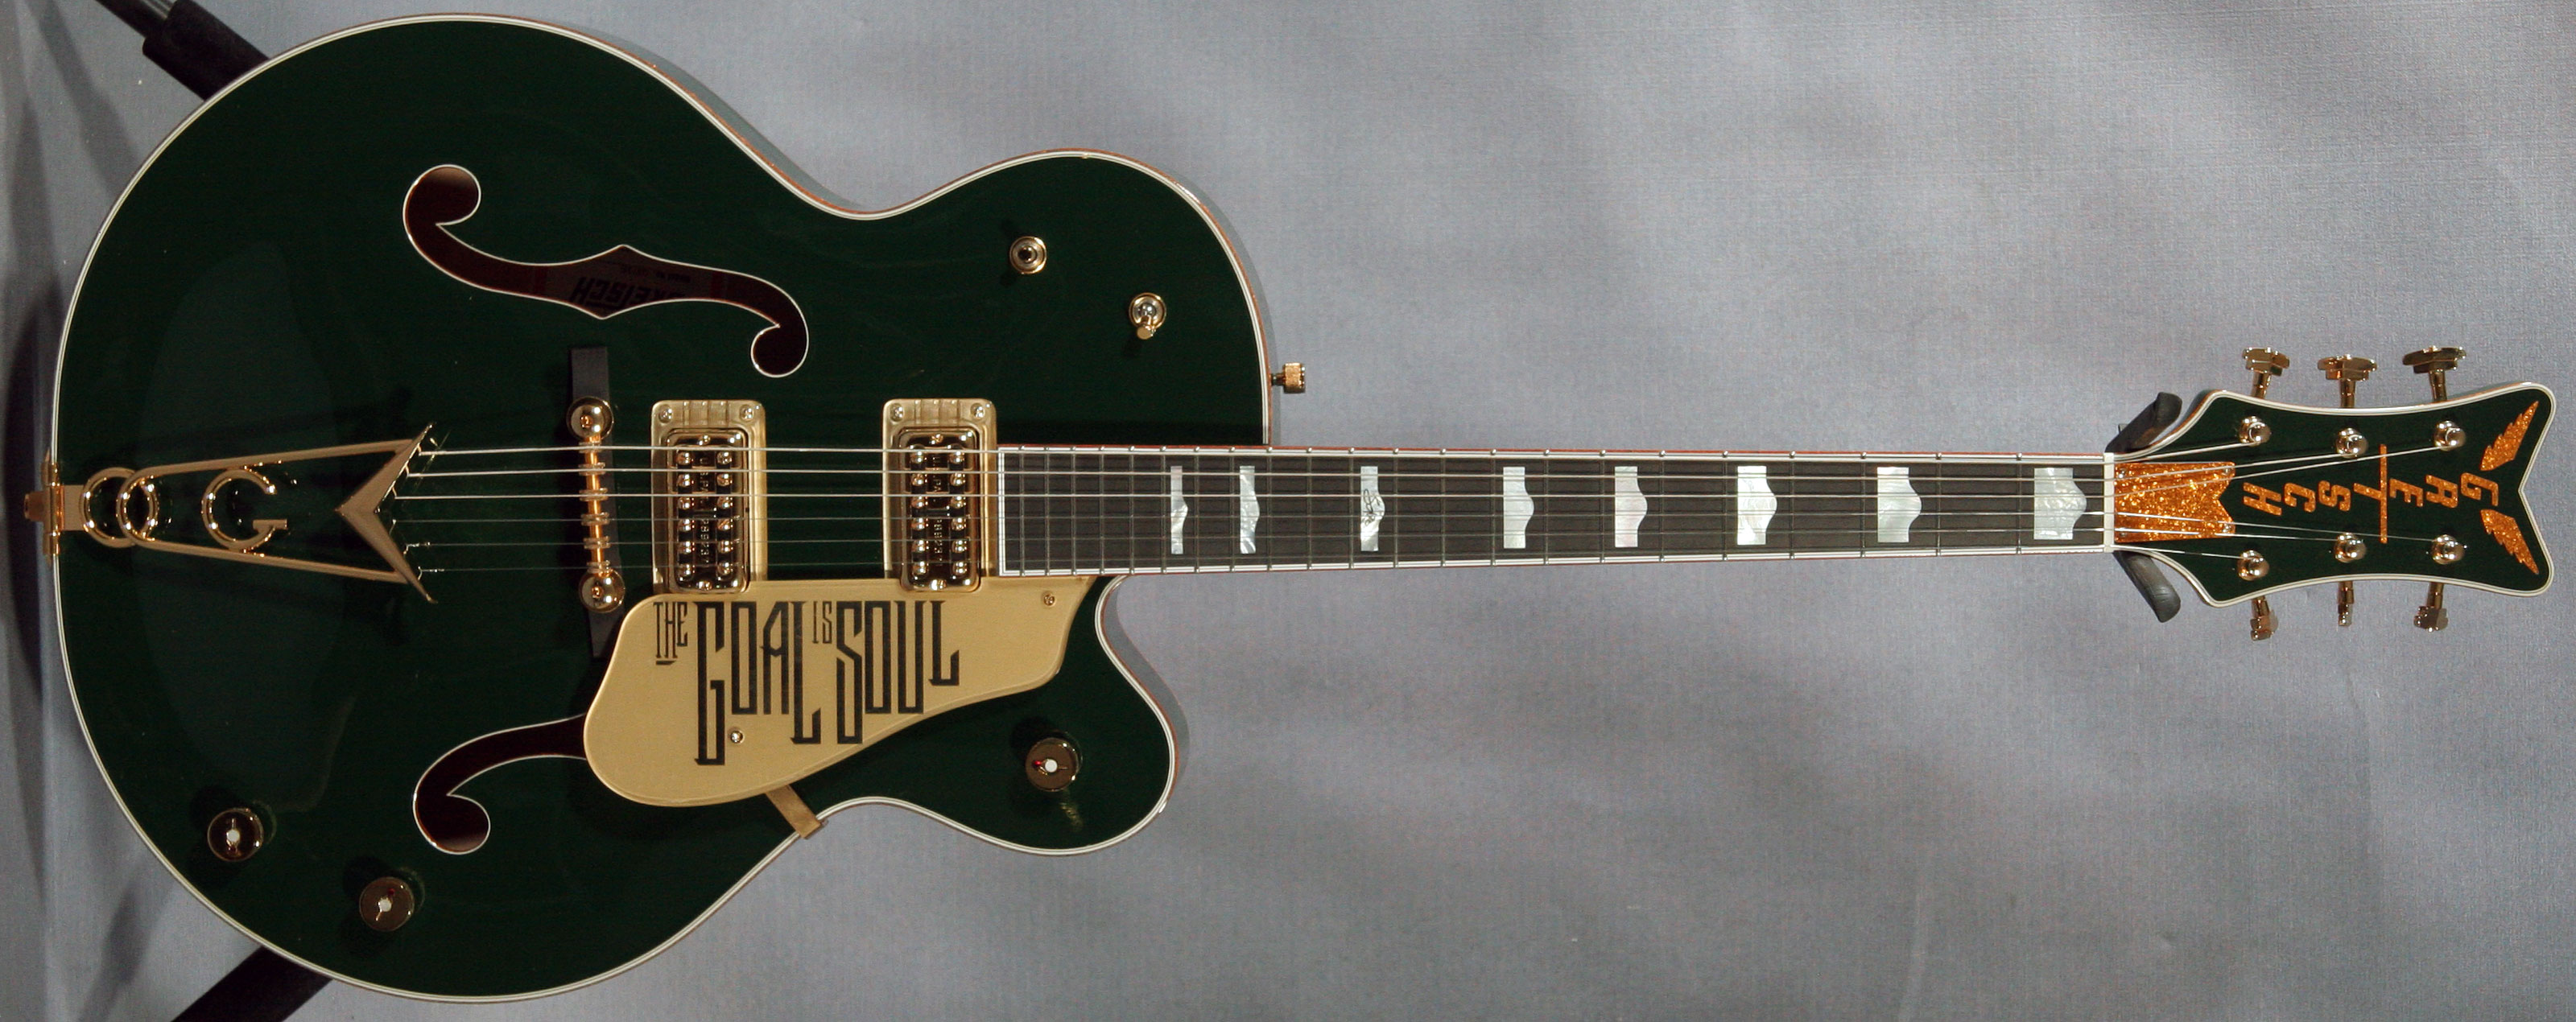 Green Guitars Green Colored Guitars Green Stained Guitars